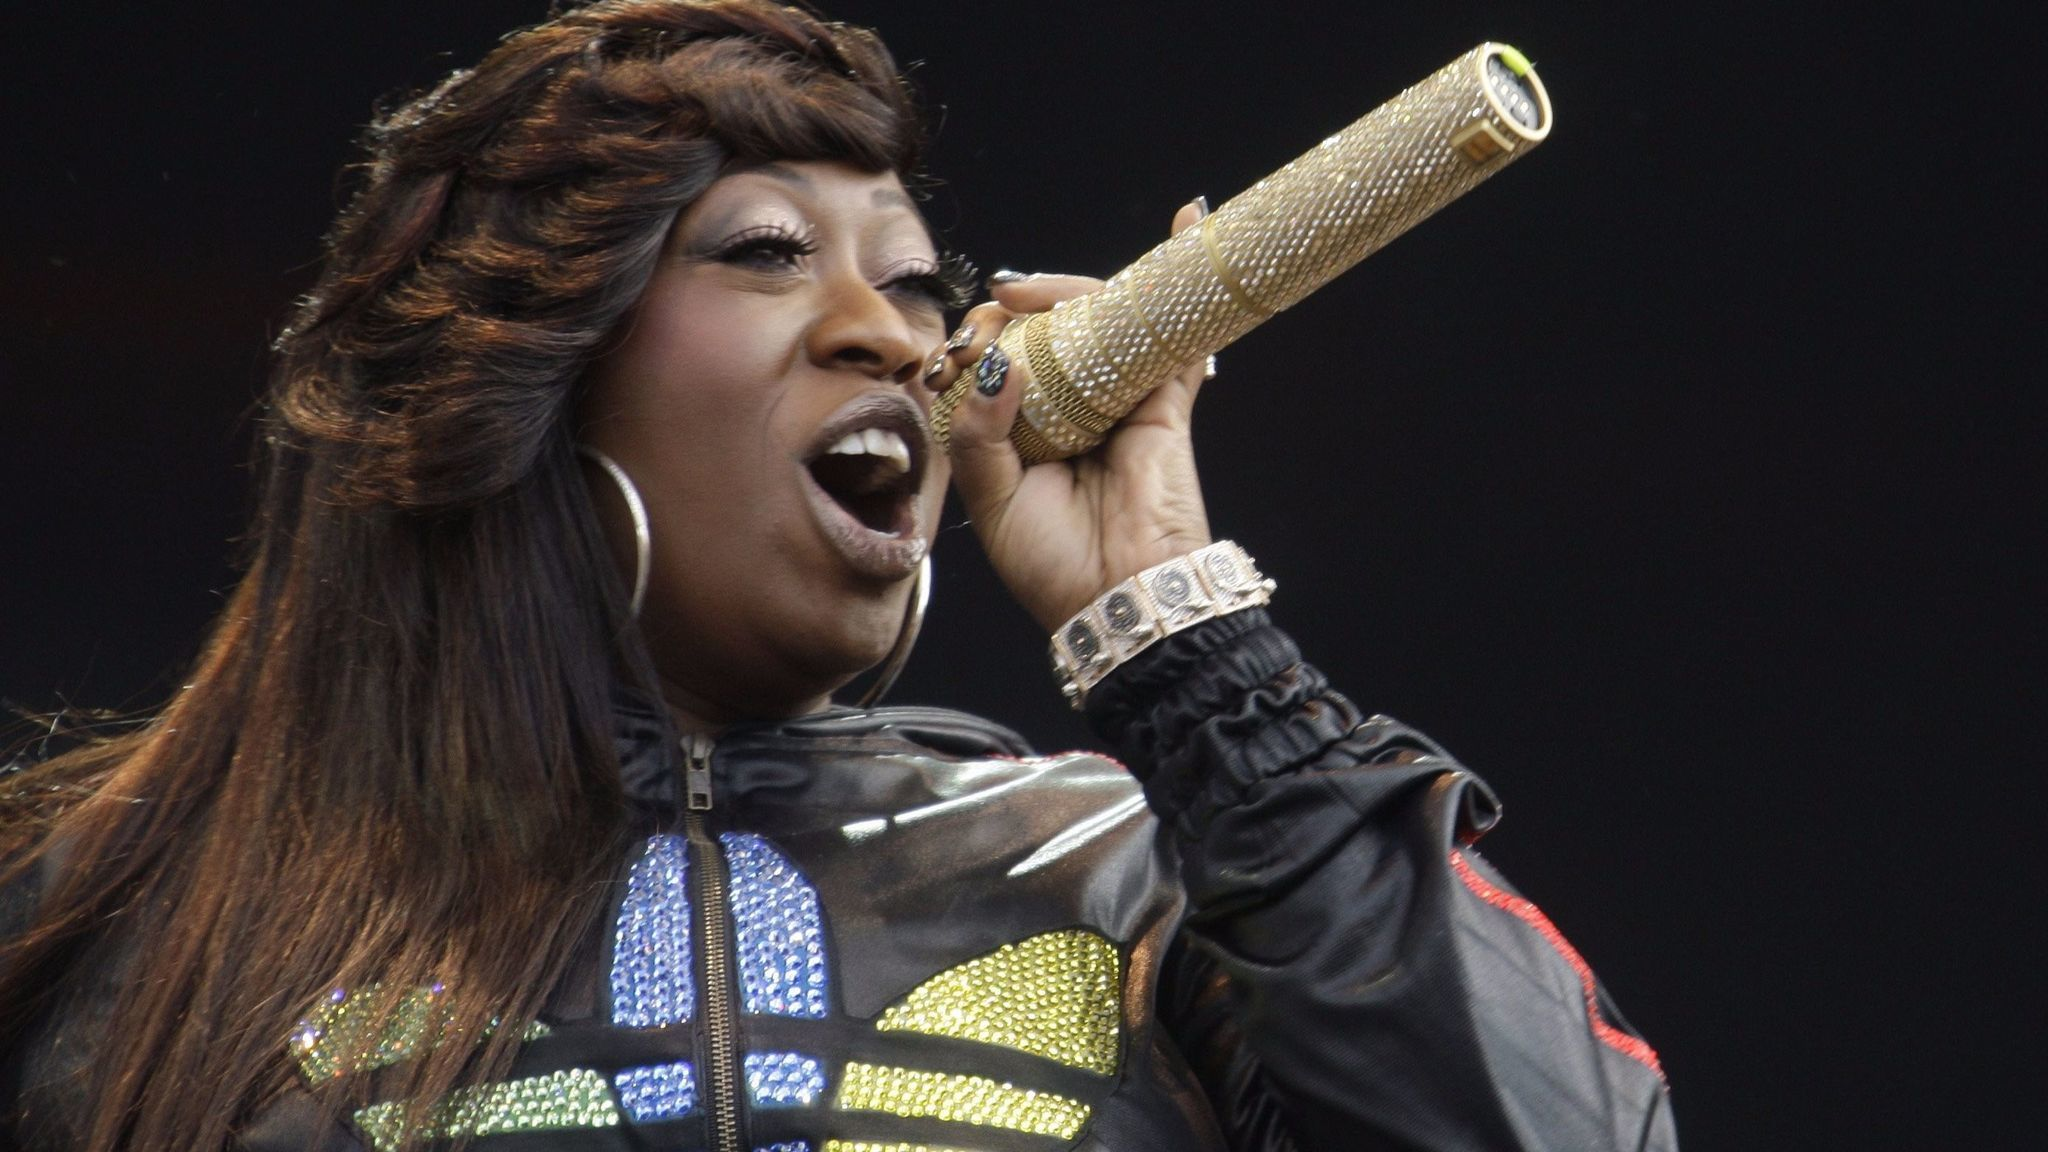 Missy Elliott at a 2010 performance in London's Hyde Park.